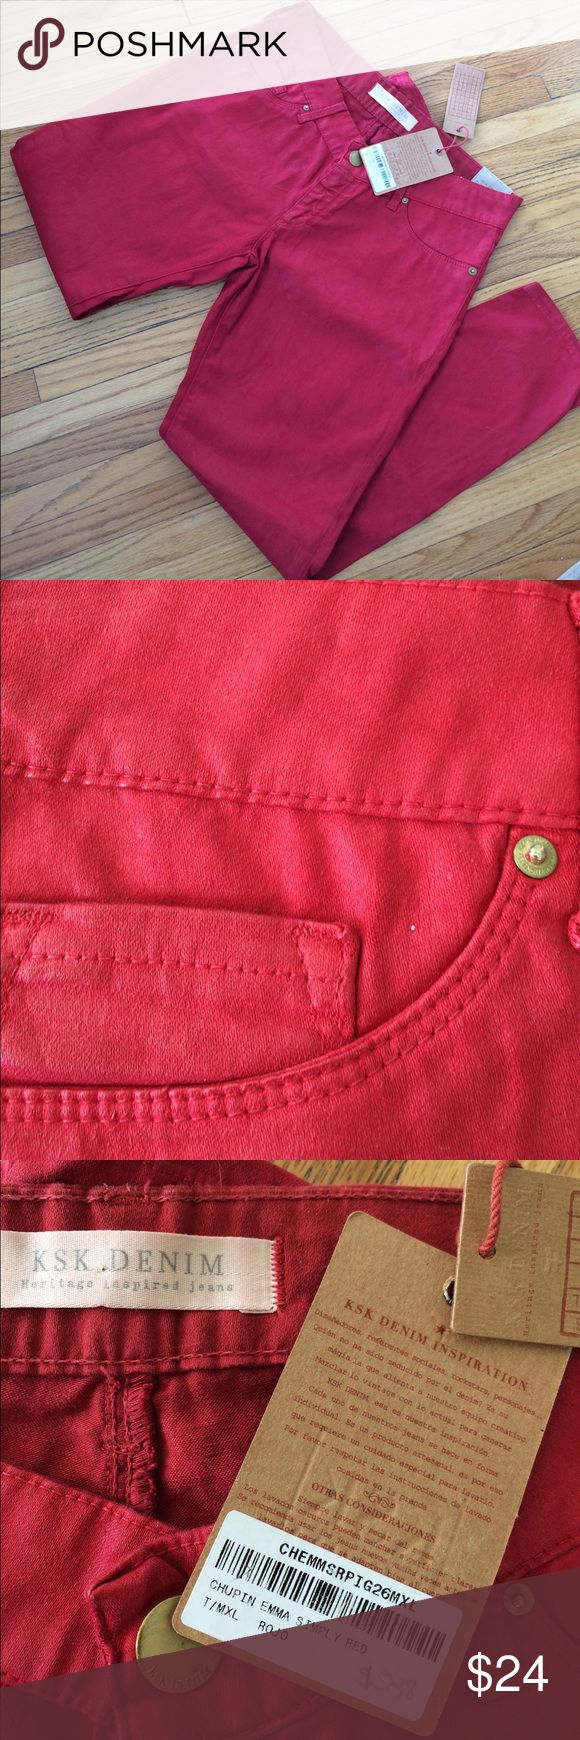 """NWT Argentina brand KSK red heritage denim Unusual fabric finish with a slightly waxy look (see pic #2). 99% cotton 1% spandex. Machine wash and dry.  Skinny stretch skimmers.  Measurements: waist 30"""", front rise 8"""", back rise 11.5"""", inseam 28"""", across thigh 10.5"""" KSK Jeans Skinny"""